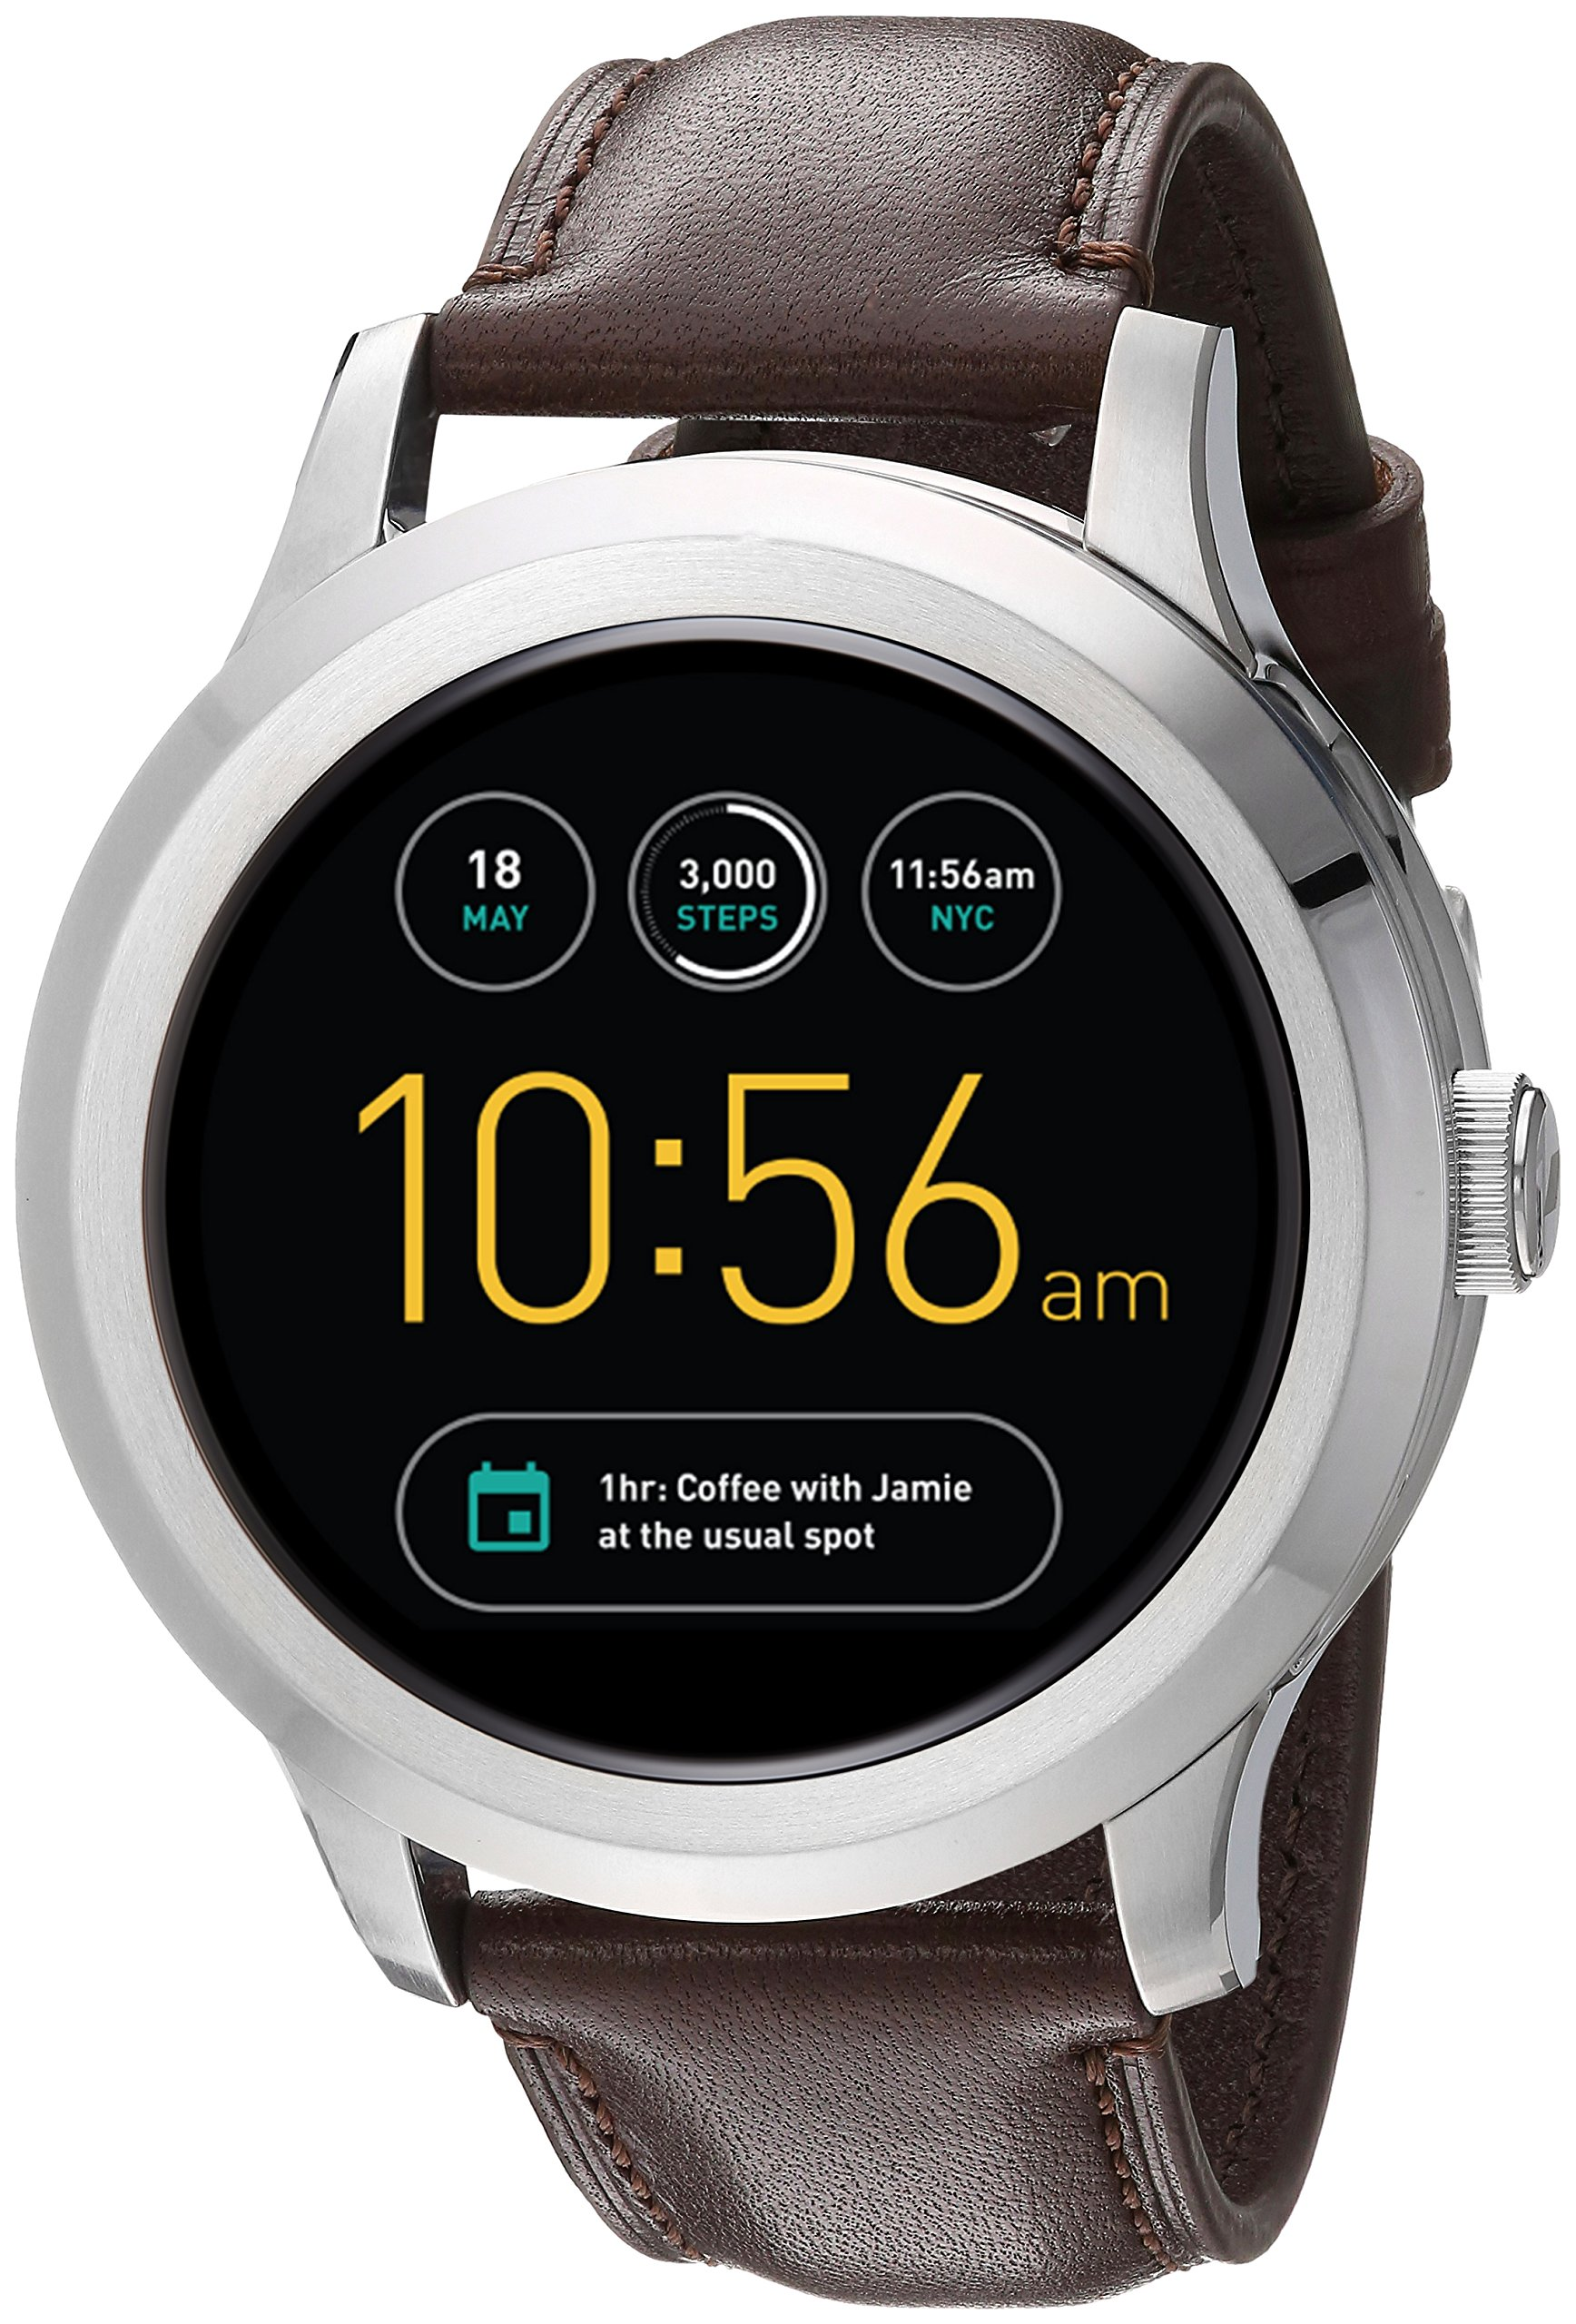 Fossil Q Founder Gen 2 Dark Brown Leather Touchscreen Smartwatch FTW2119 by Fossil (Image #1)